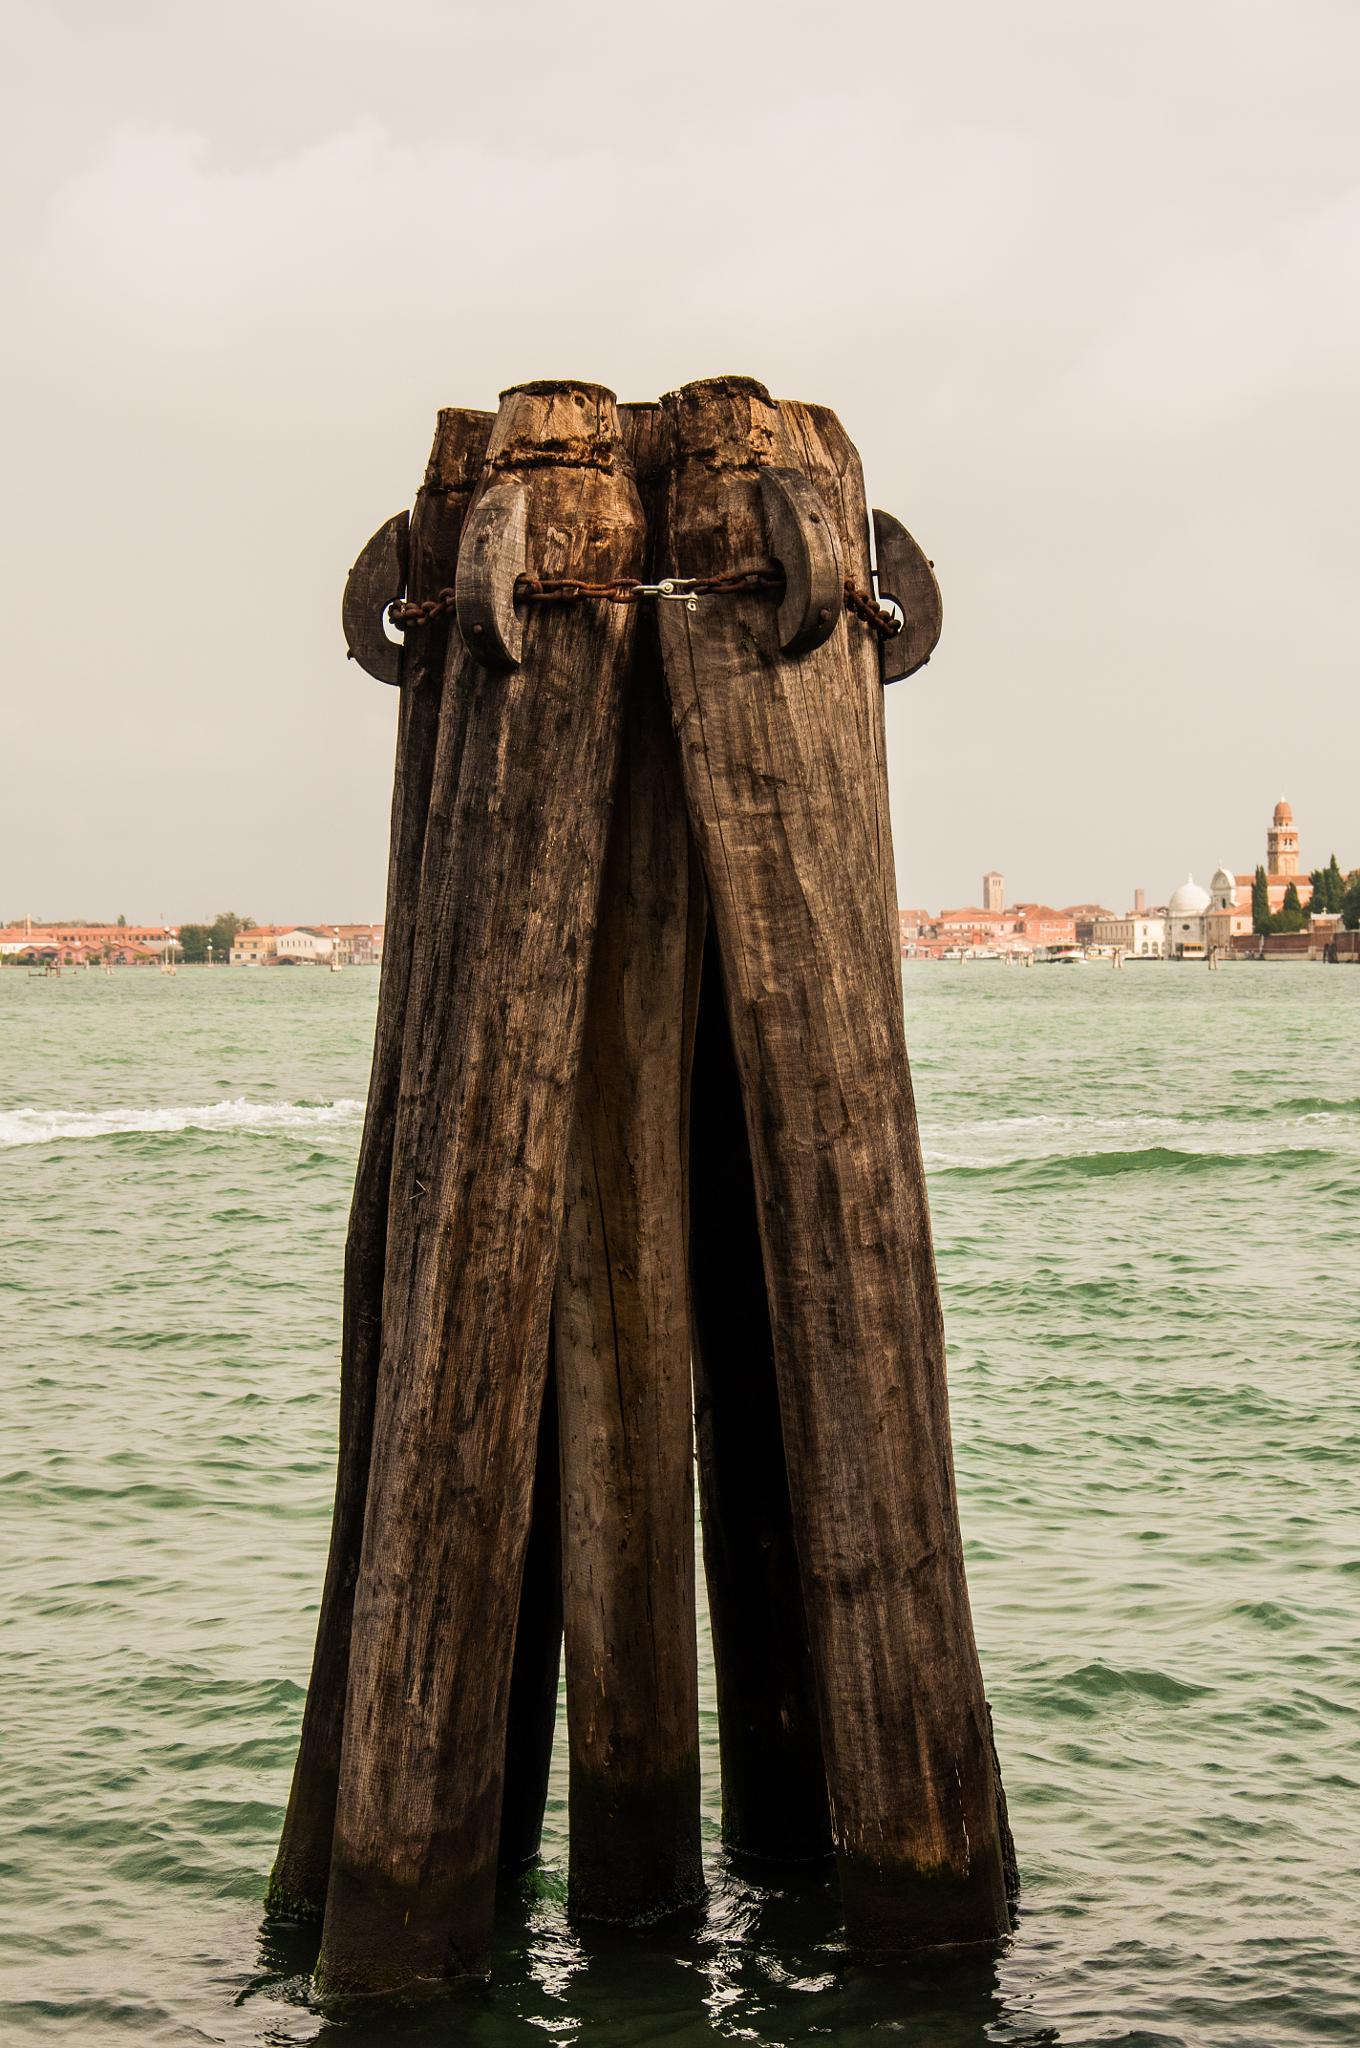 Venice wood pilings by Dimitris Gkoutzamanis